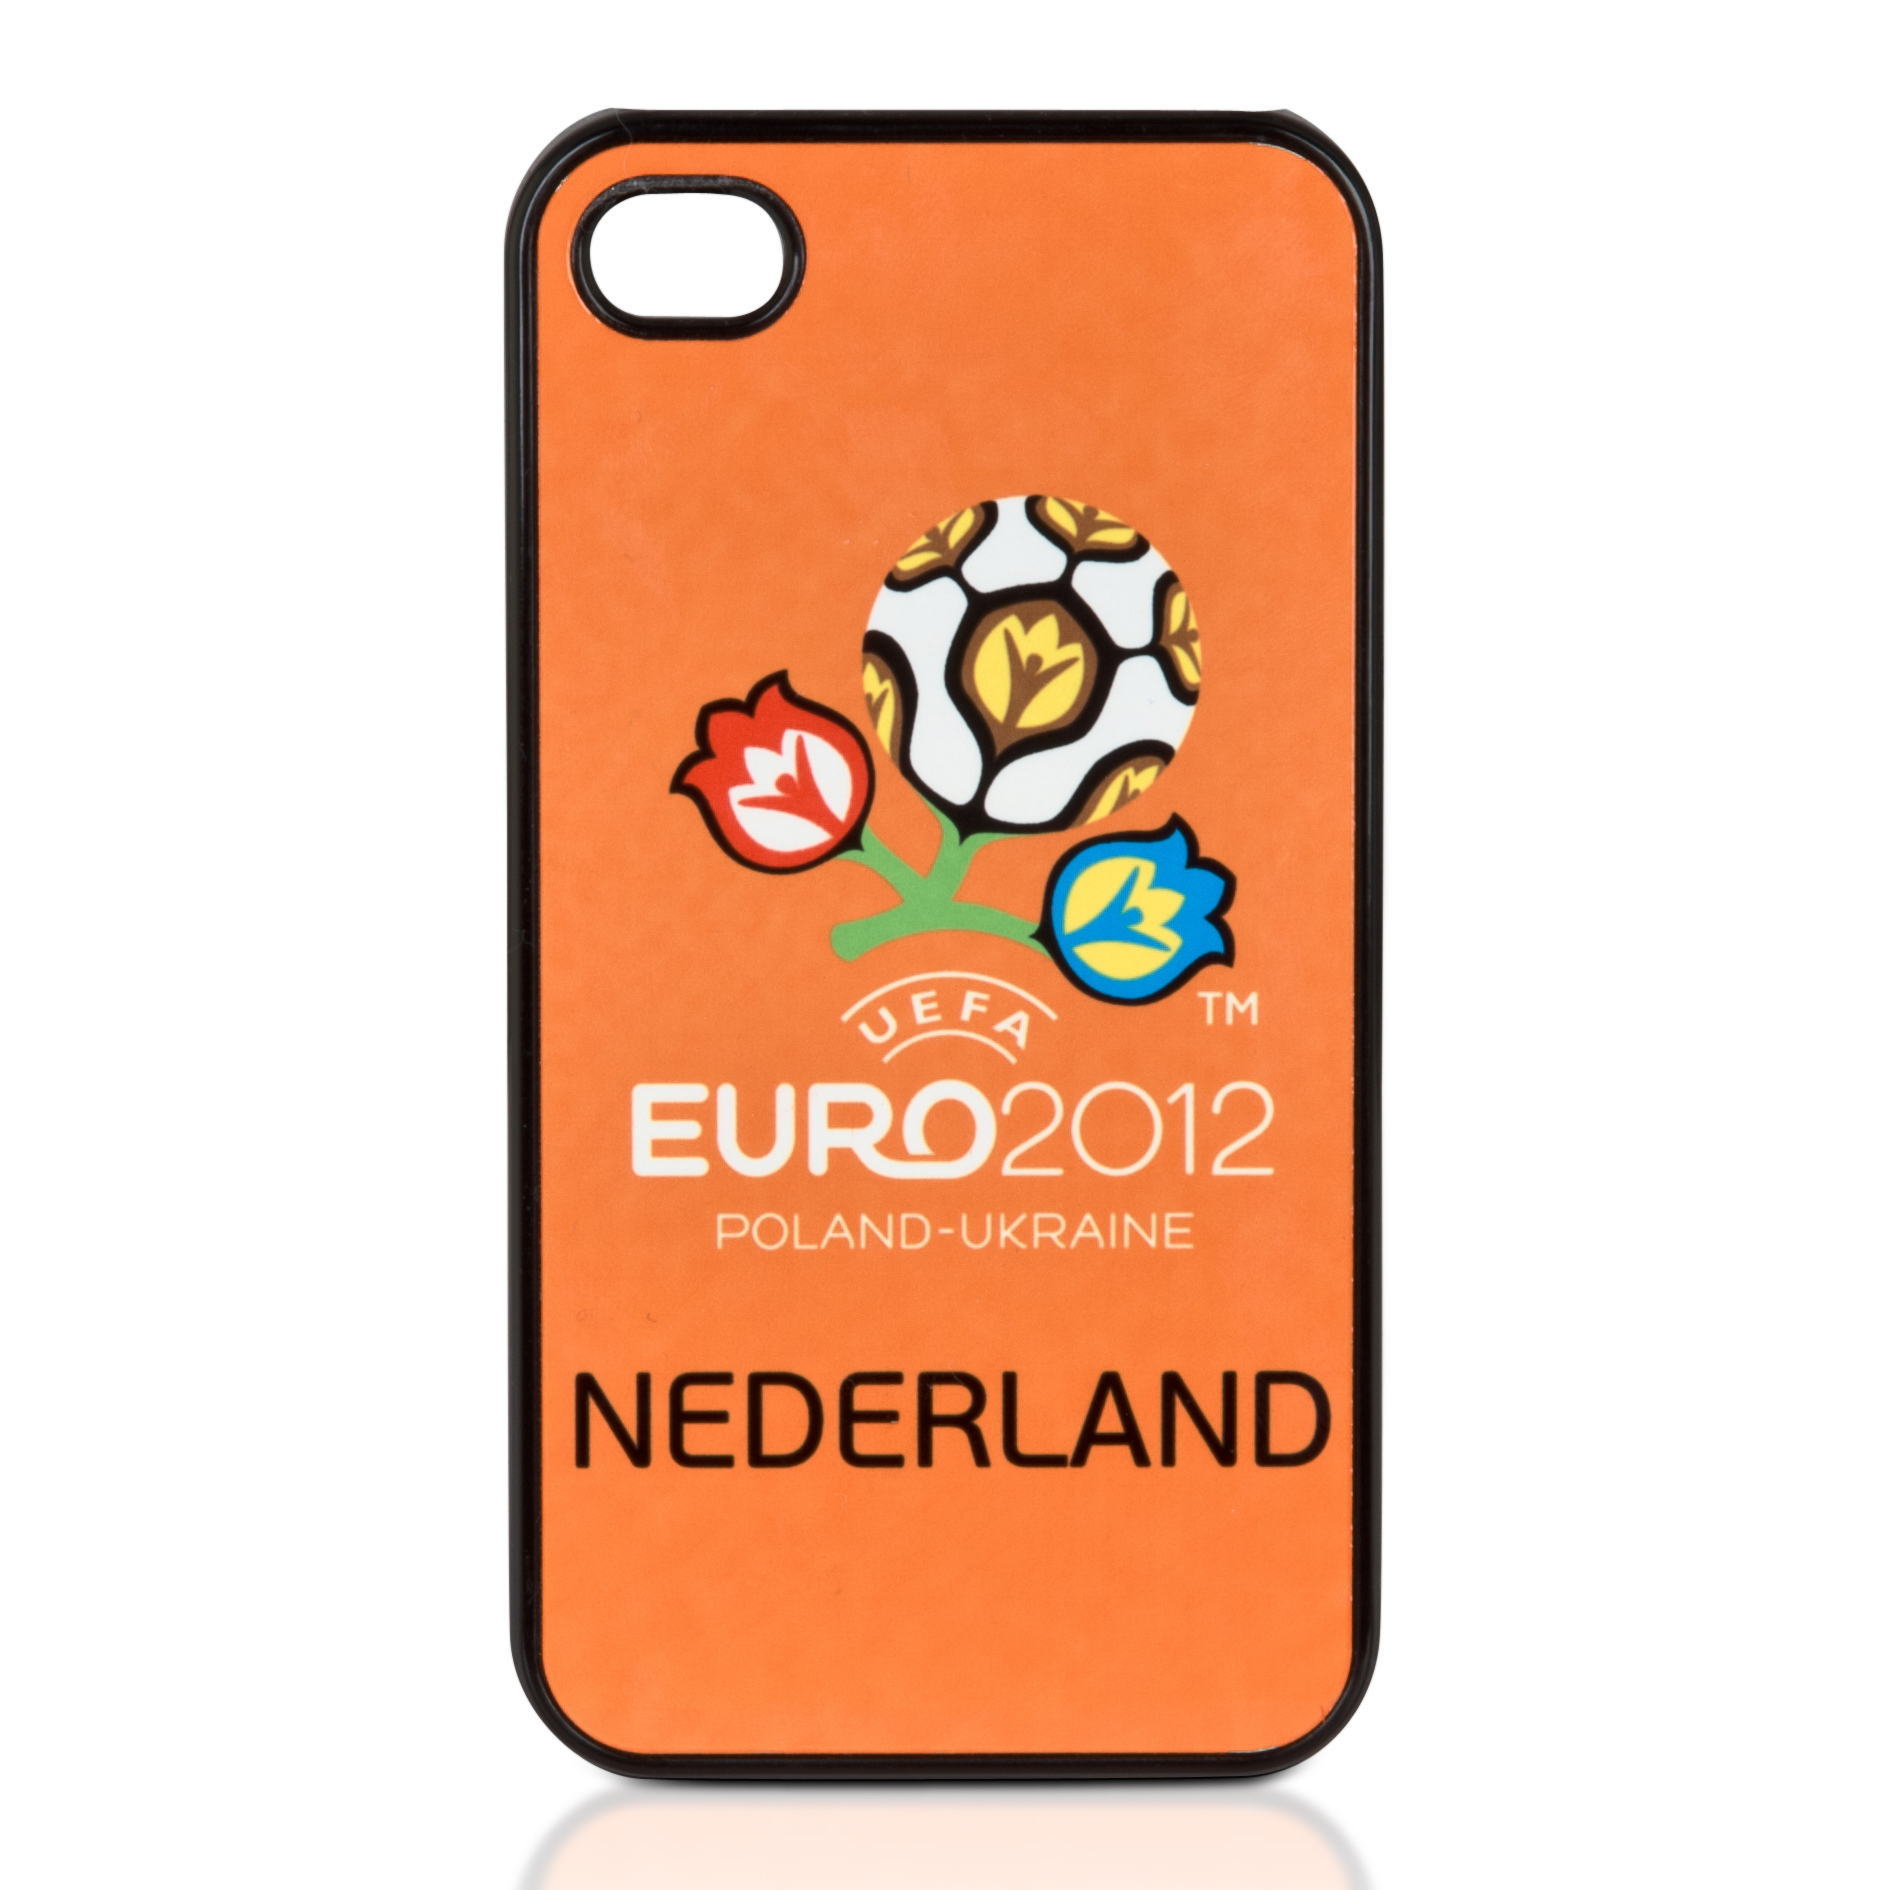 Holland Country Iphone 4 Cover - Holland